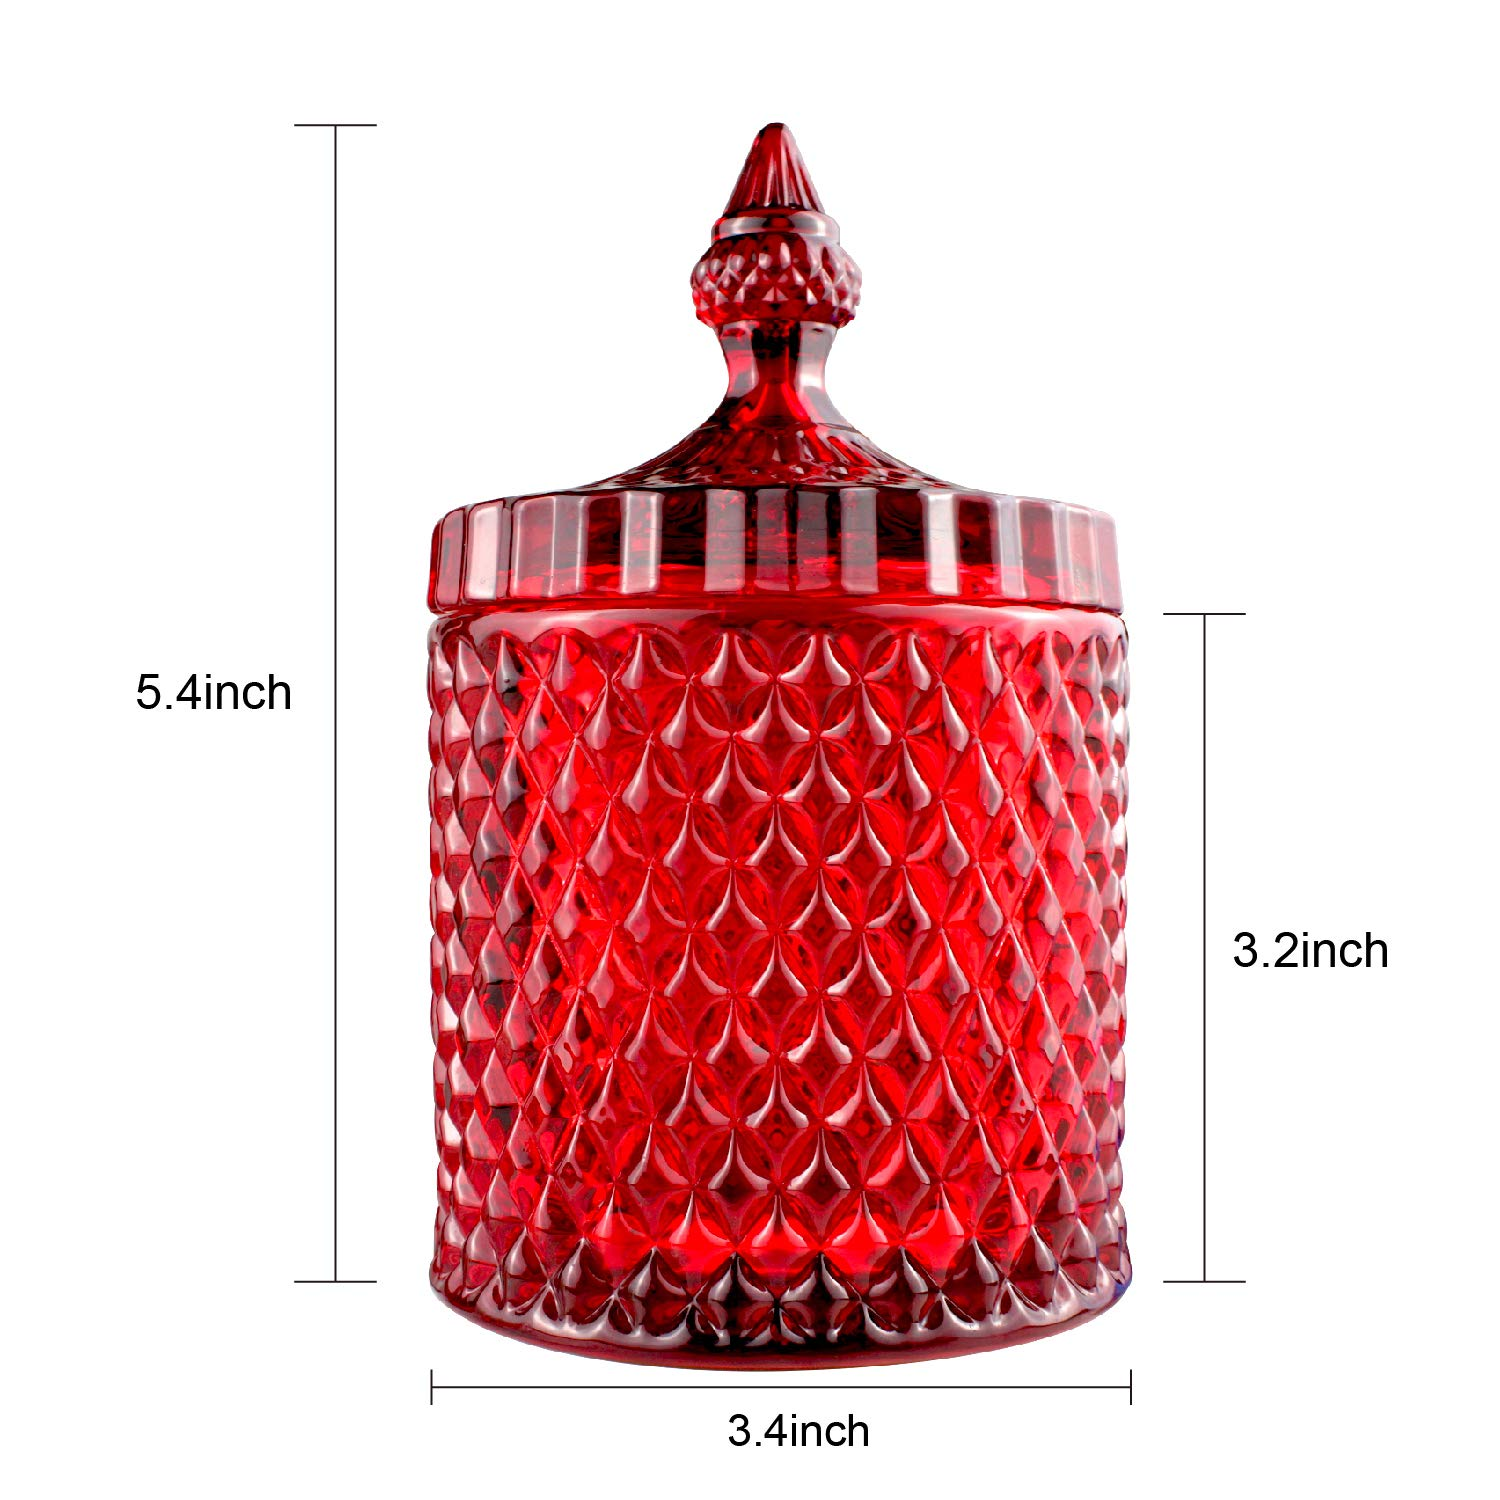 Candy Jar, Clear Glass Apothecary Container, Biscuit Barrel, Cookies Tin, Dry Food Storage Canister Crystal Weave Wedding Decorative Buffet Jars with Lid (Red, Middle)